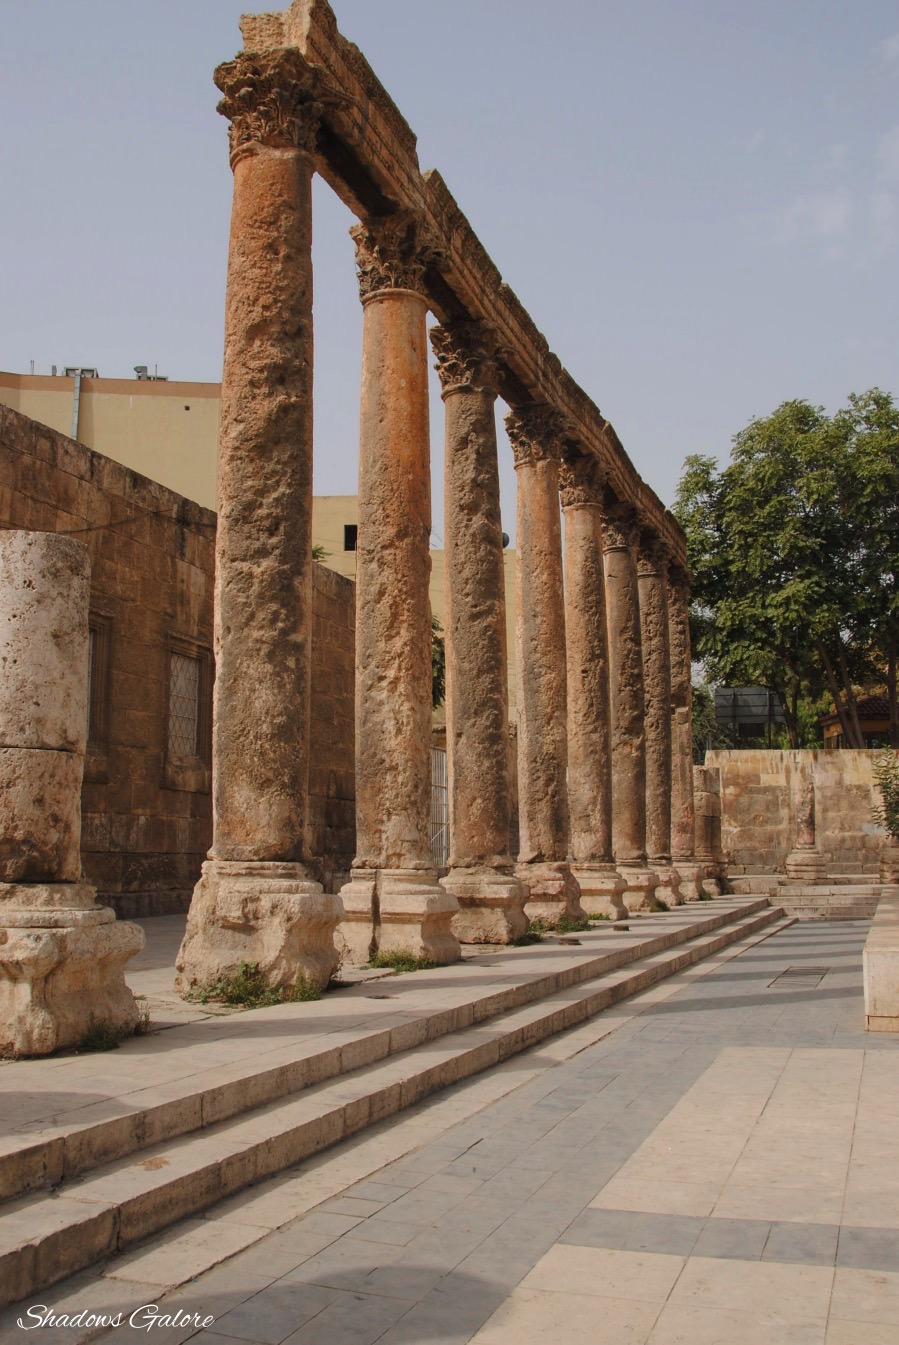 Pillars in the outer compound